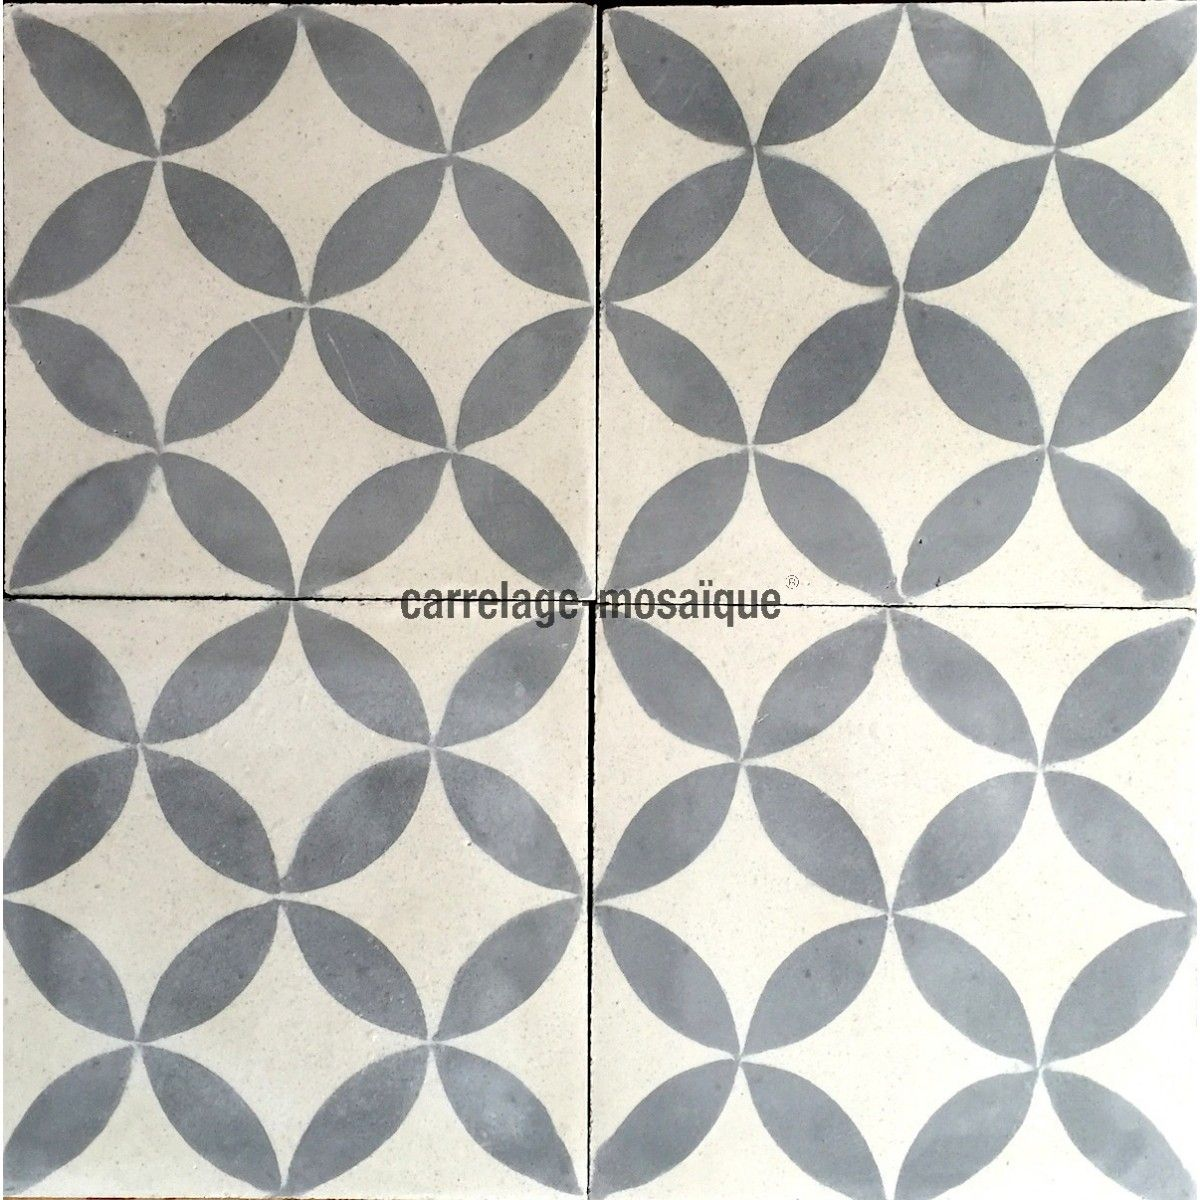 Carrelage ciment pas cher 1m2 modele sampa gris for Ciment carrelage